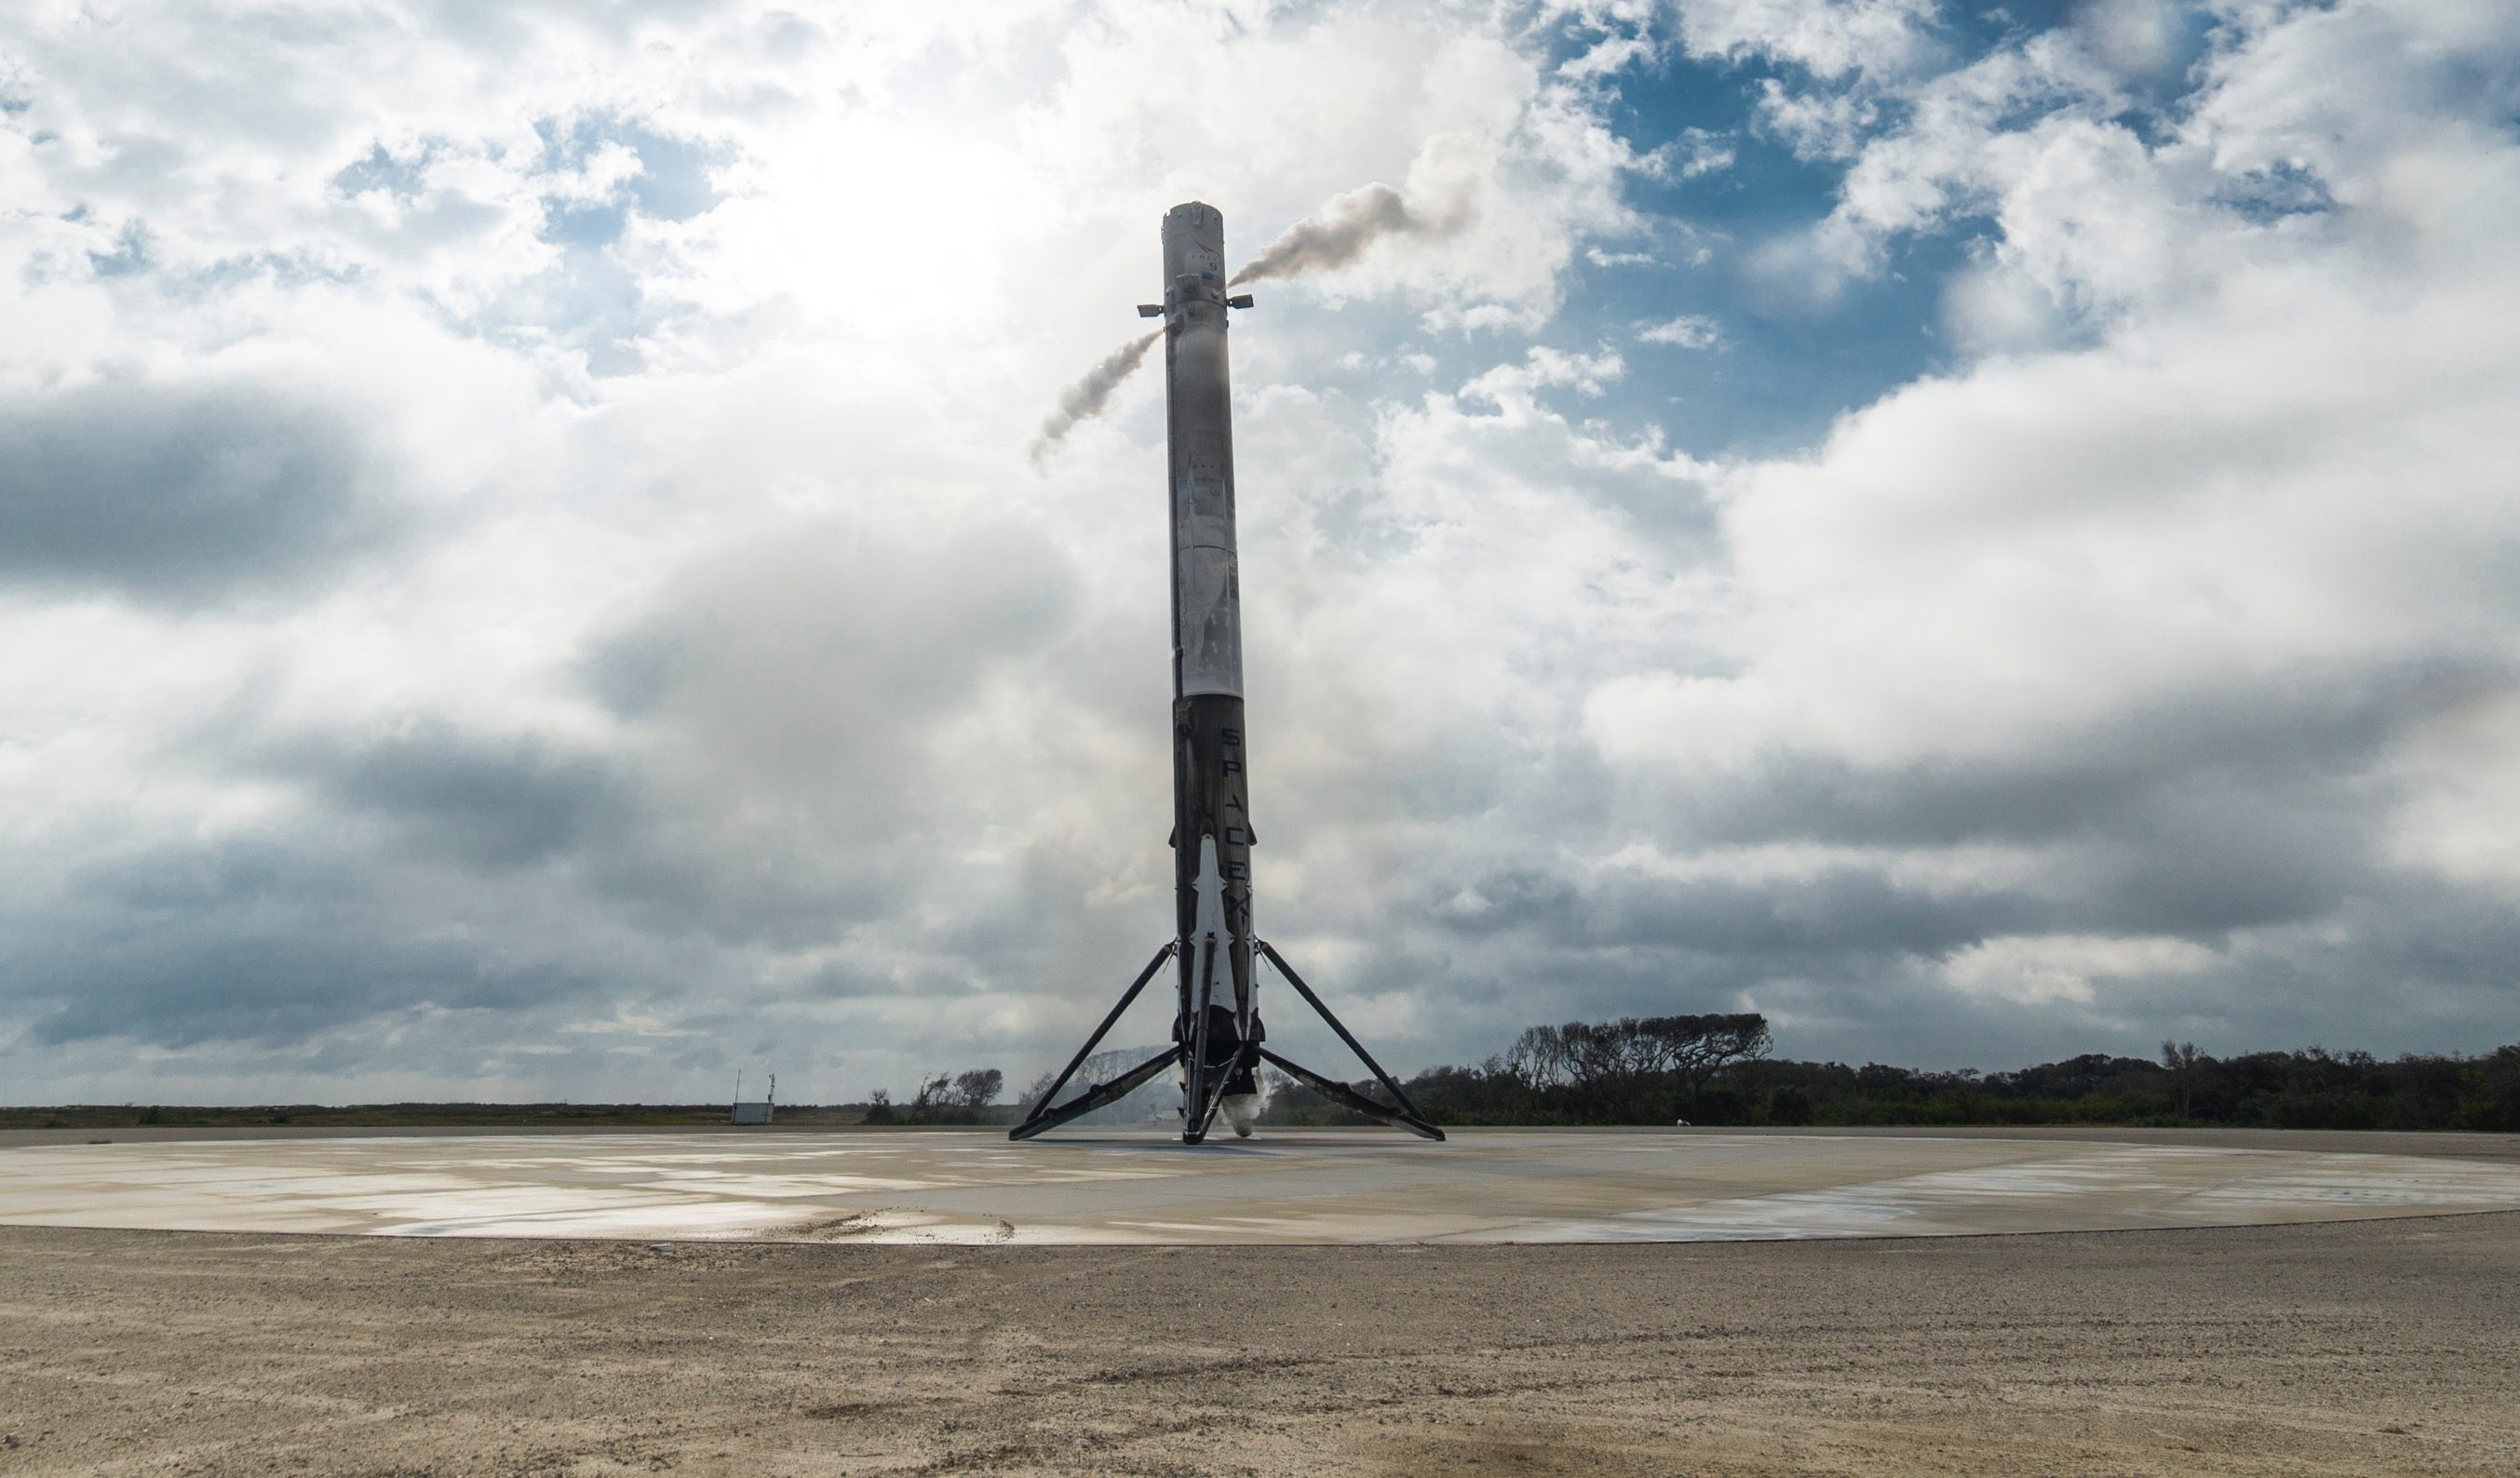 The first stage of Falcon 9 landed at LZ-1 following the launch of CRS-10 in February 2017. Expect a similar spectacle this Monday! (SpaceX)